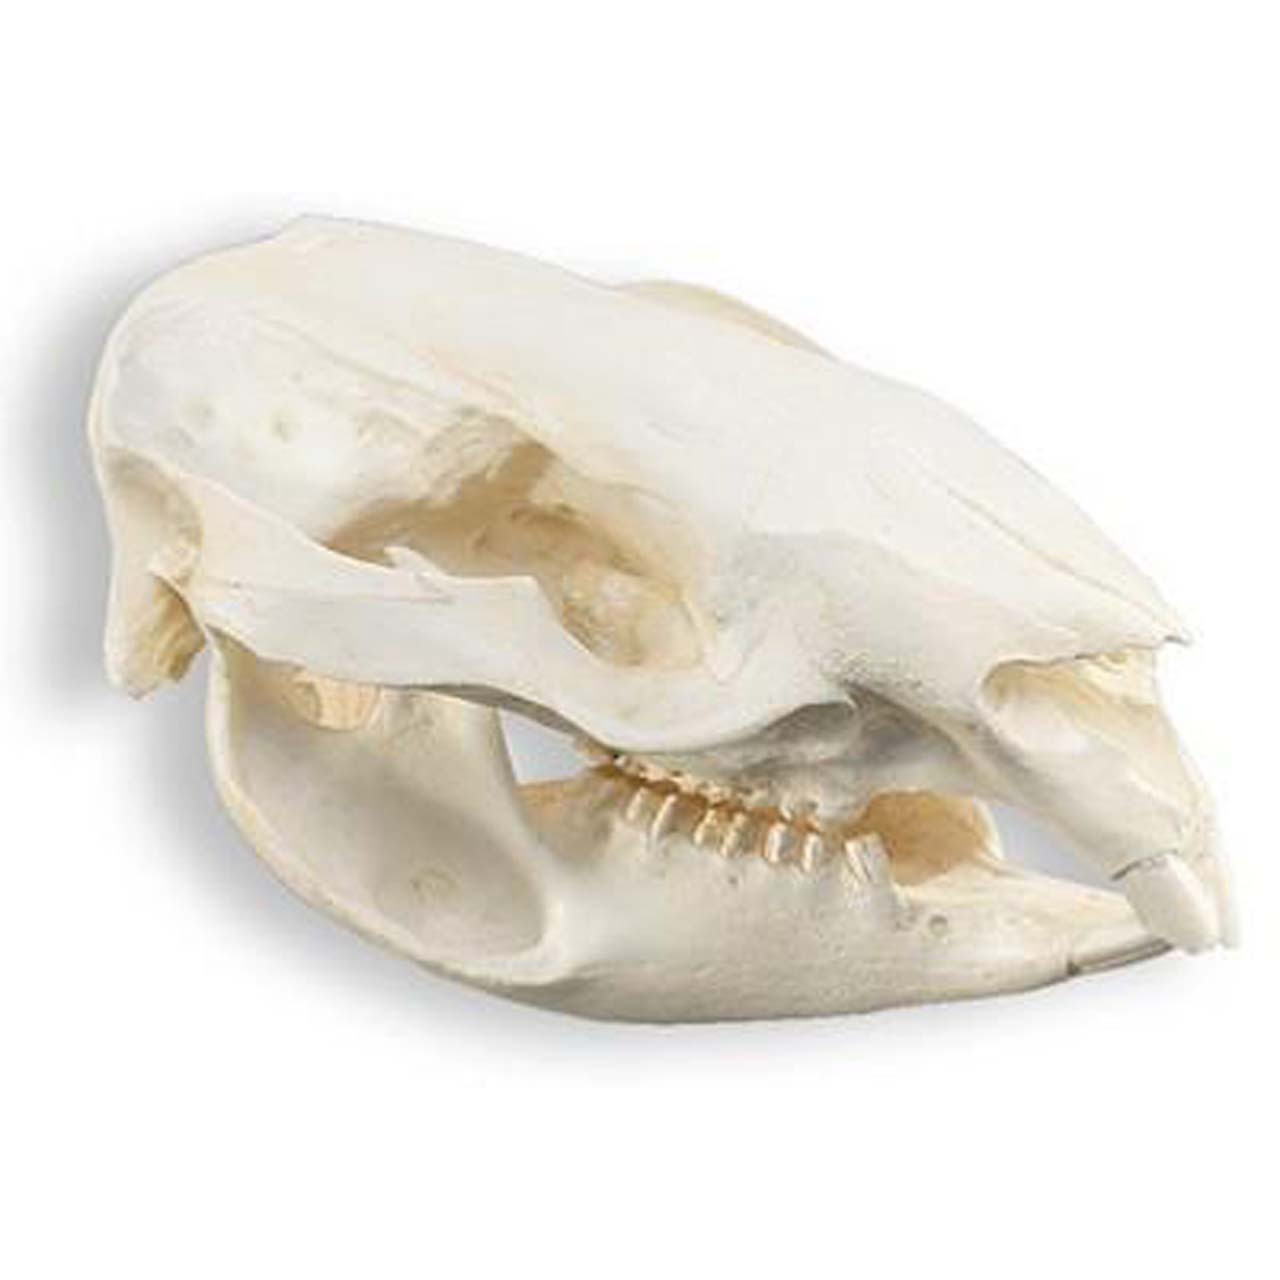 Wombat skull, Teaching quality